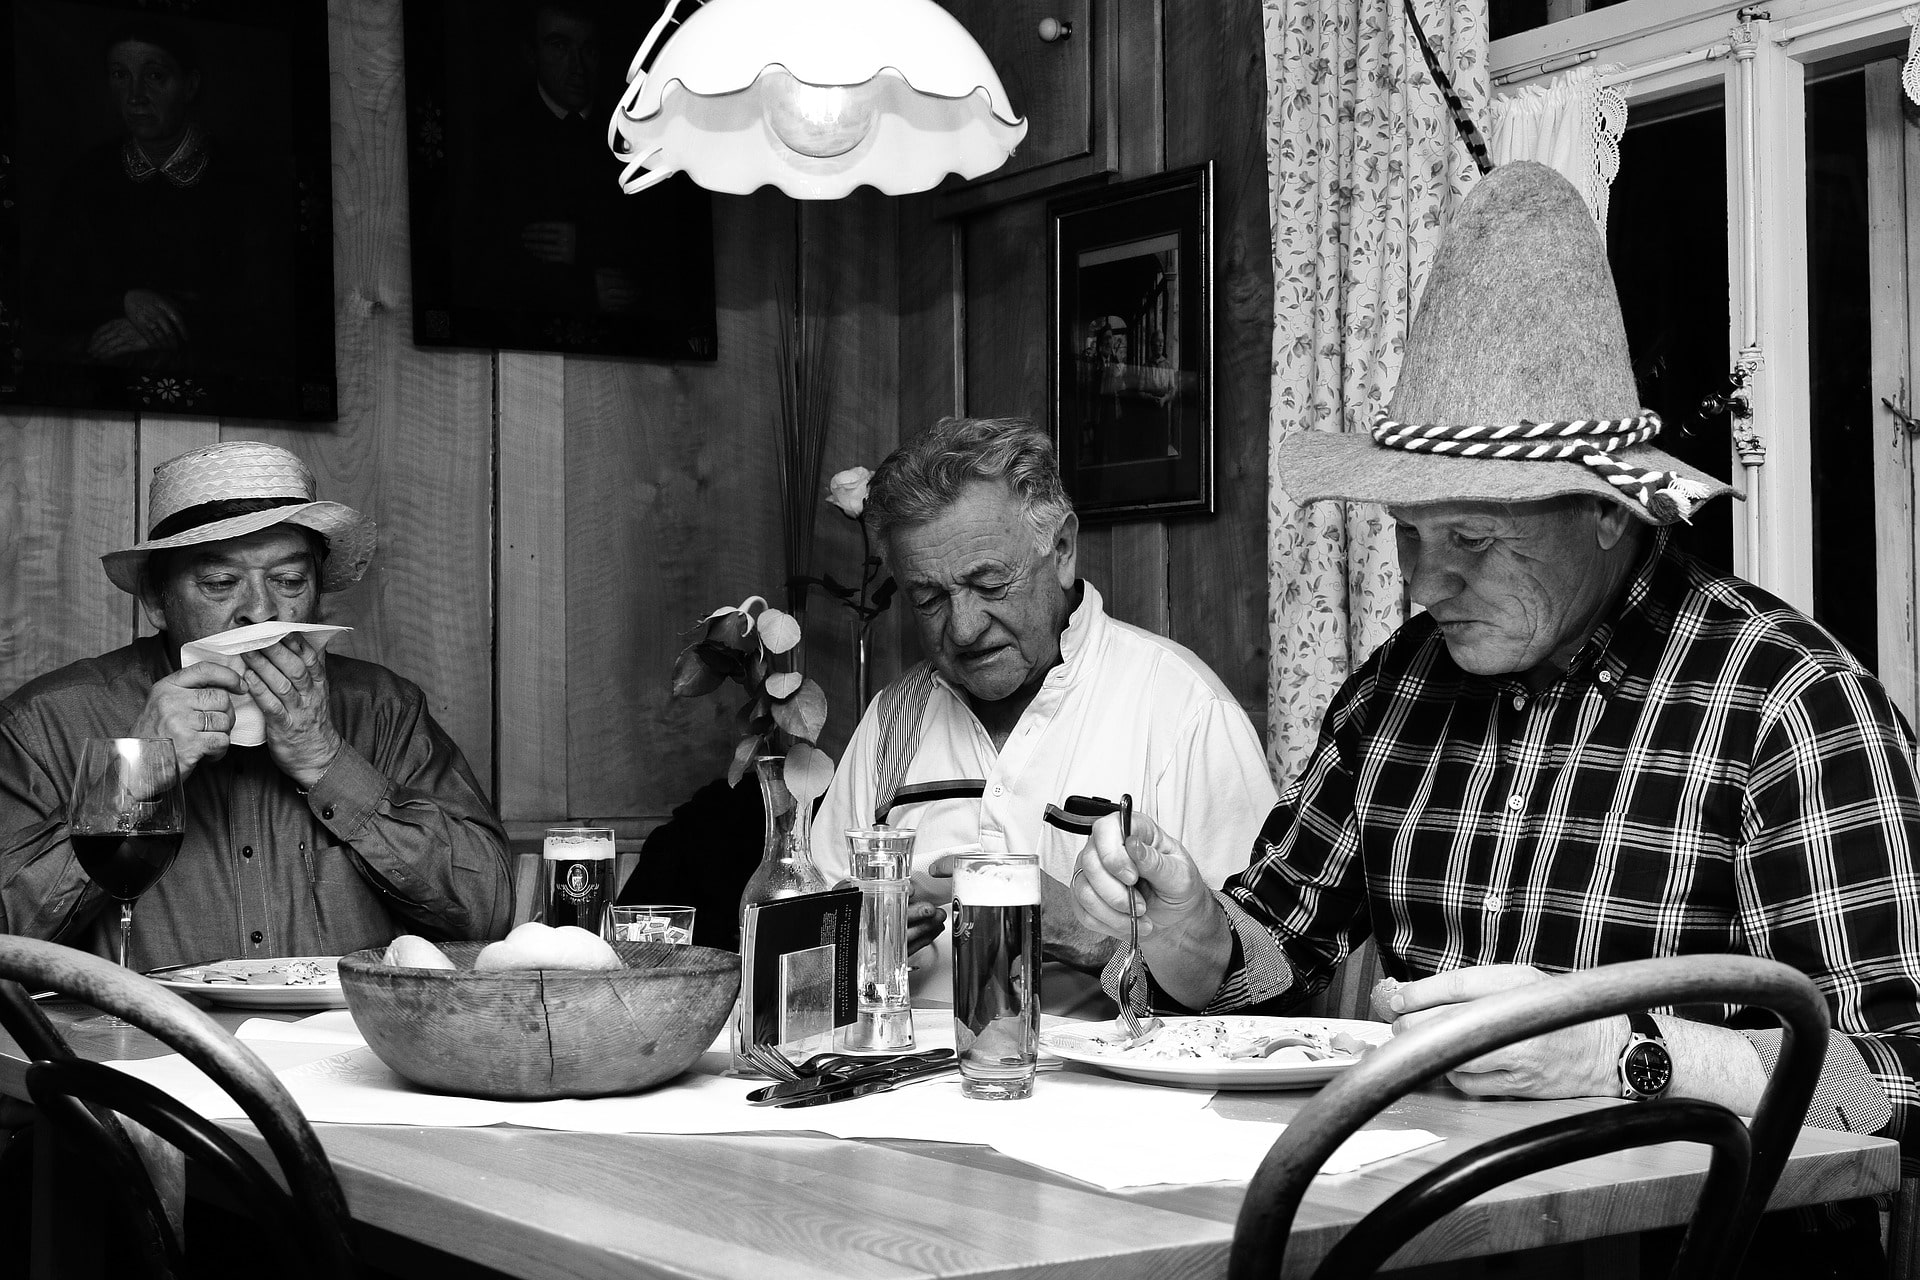 three men with hats sit together at the table and eat